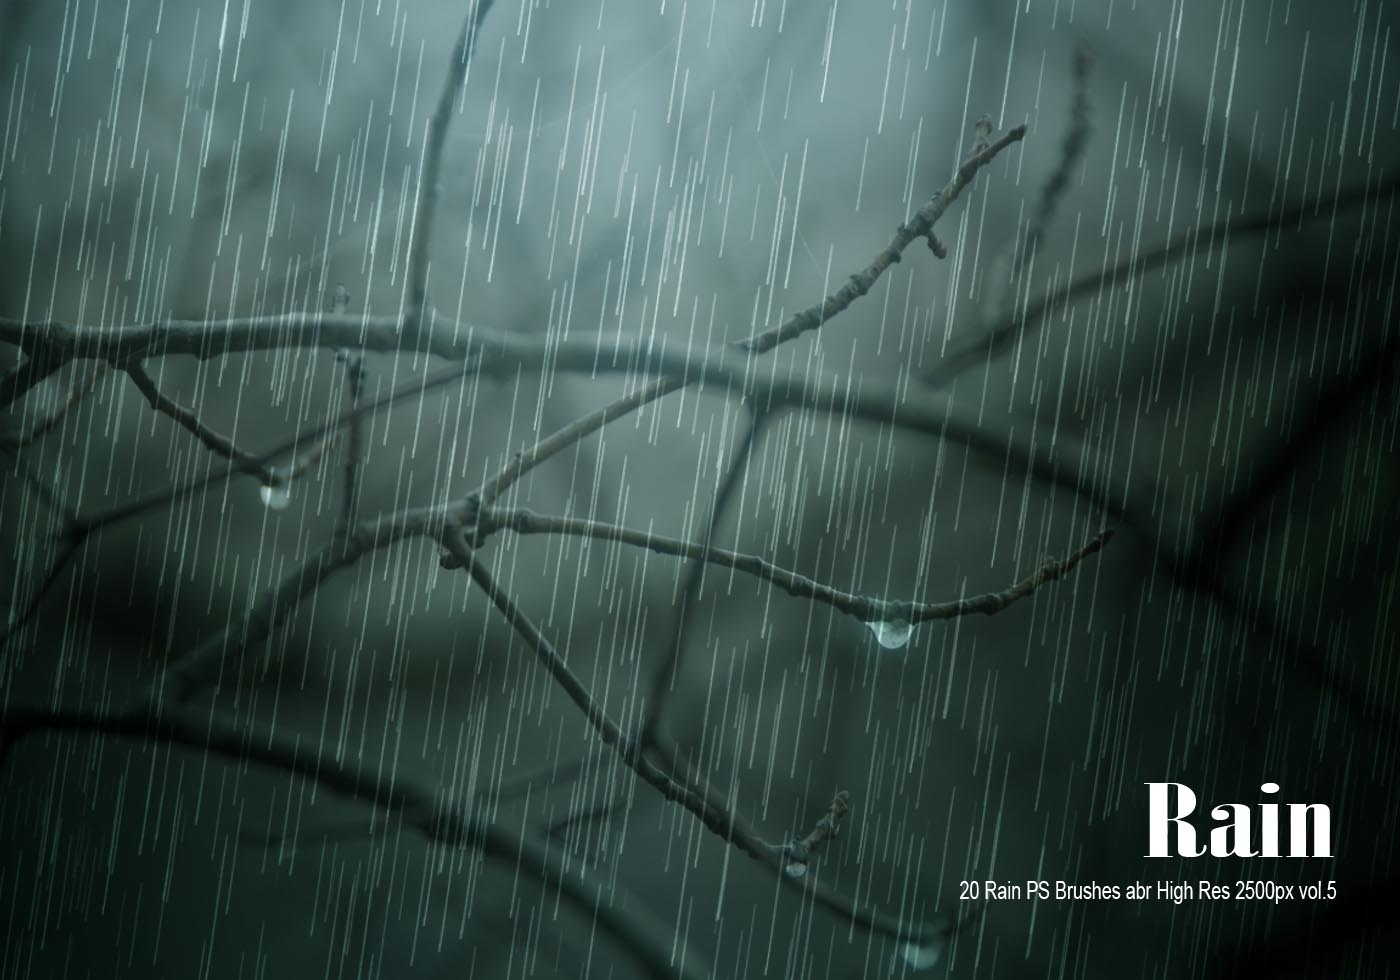 20 rain ps brushes abr vol 6